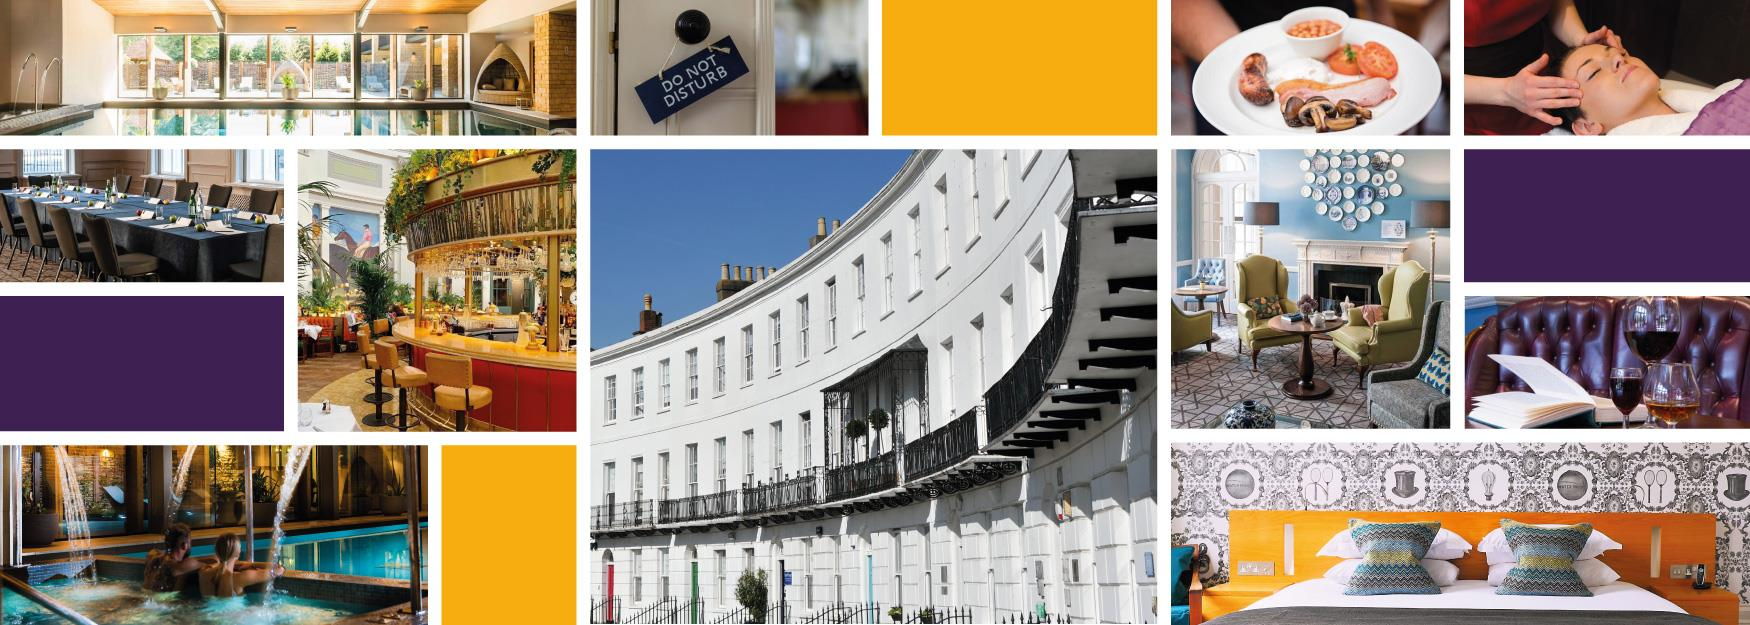 Collage of images of Cheltenham hotels and spas.